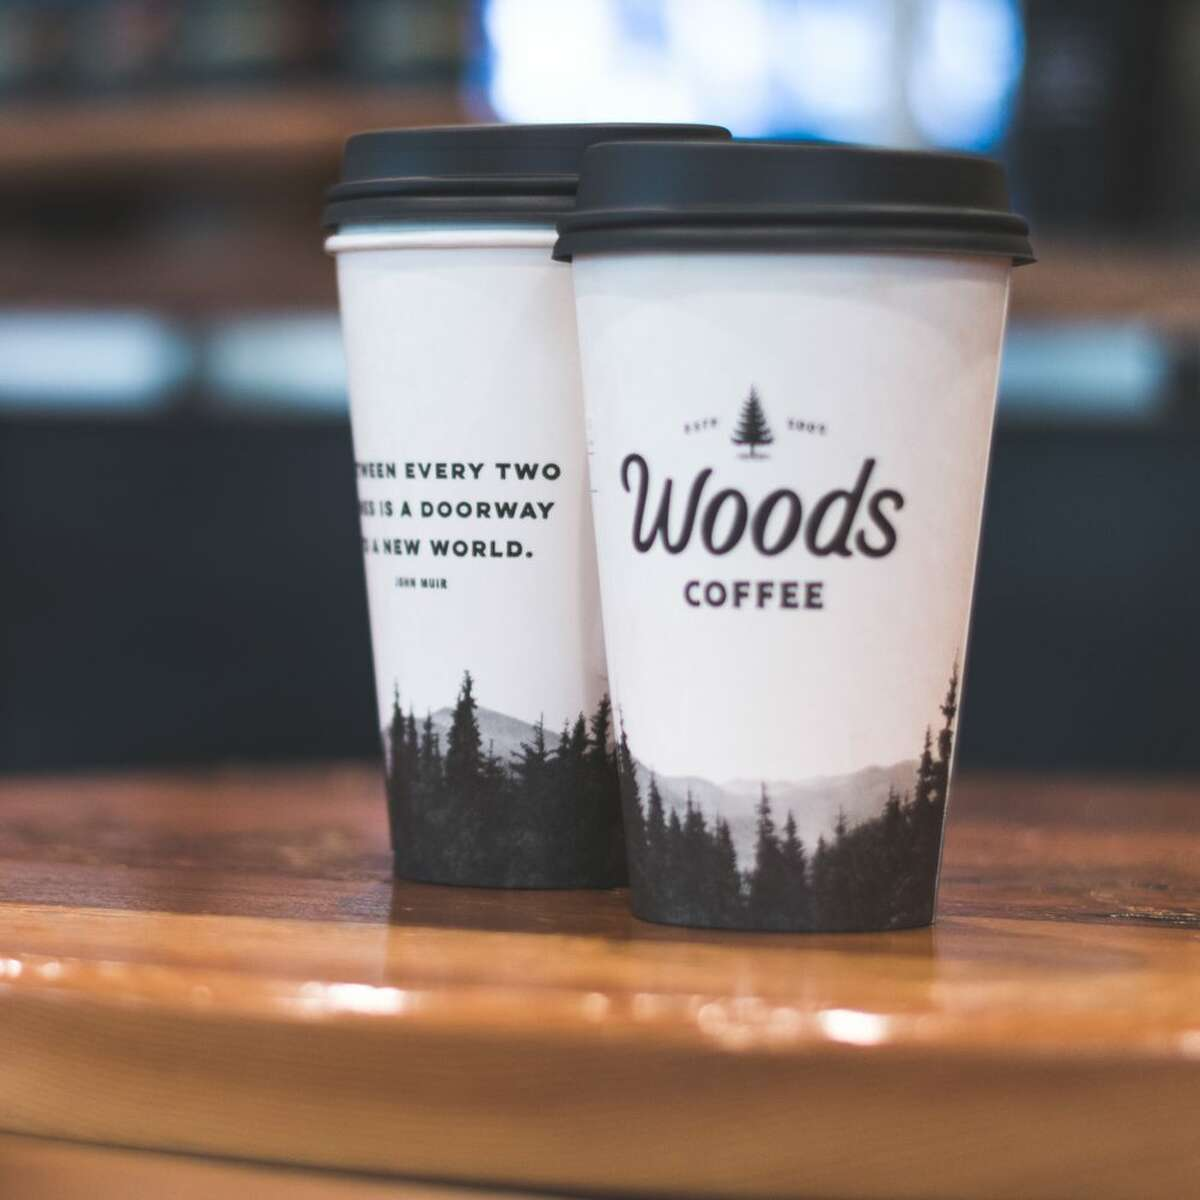 Woods Coffee was established in 2002 by the Herman family of Lynden, Washington. After six months, they opened their second store in the same town, andnow has Woods Coffee locations throughout the Pacific Northwest, located in Whatcom County, Skagit County, and King County. On the Eastside, you can nab their lightly sweetened PSL without straying too far from town.